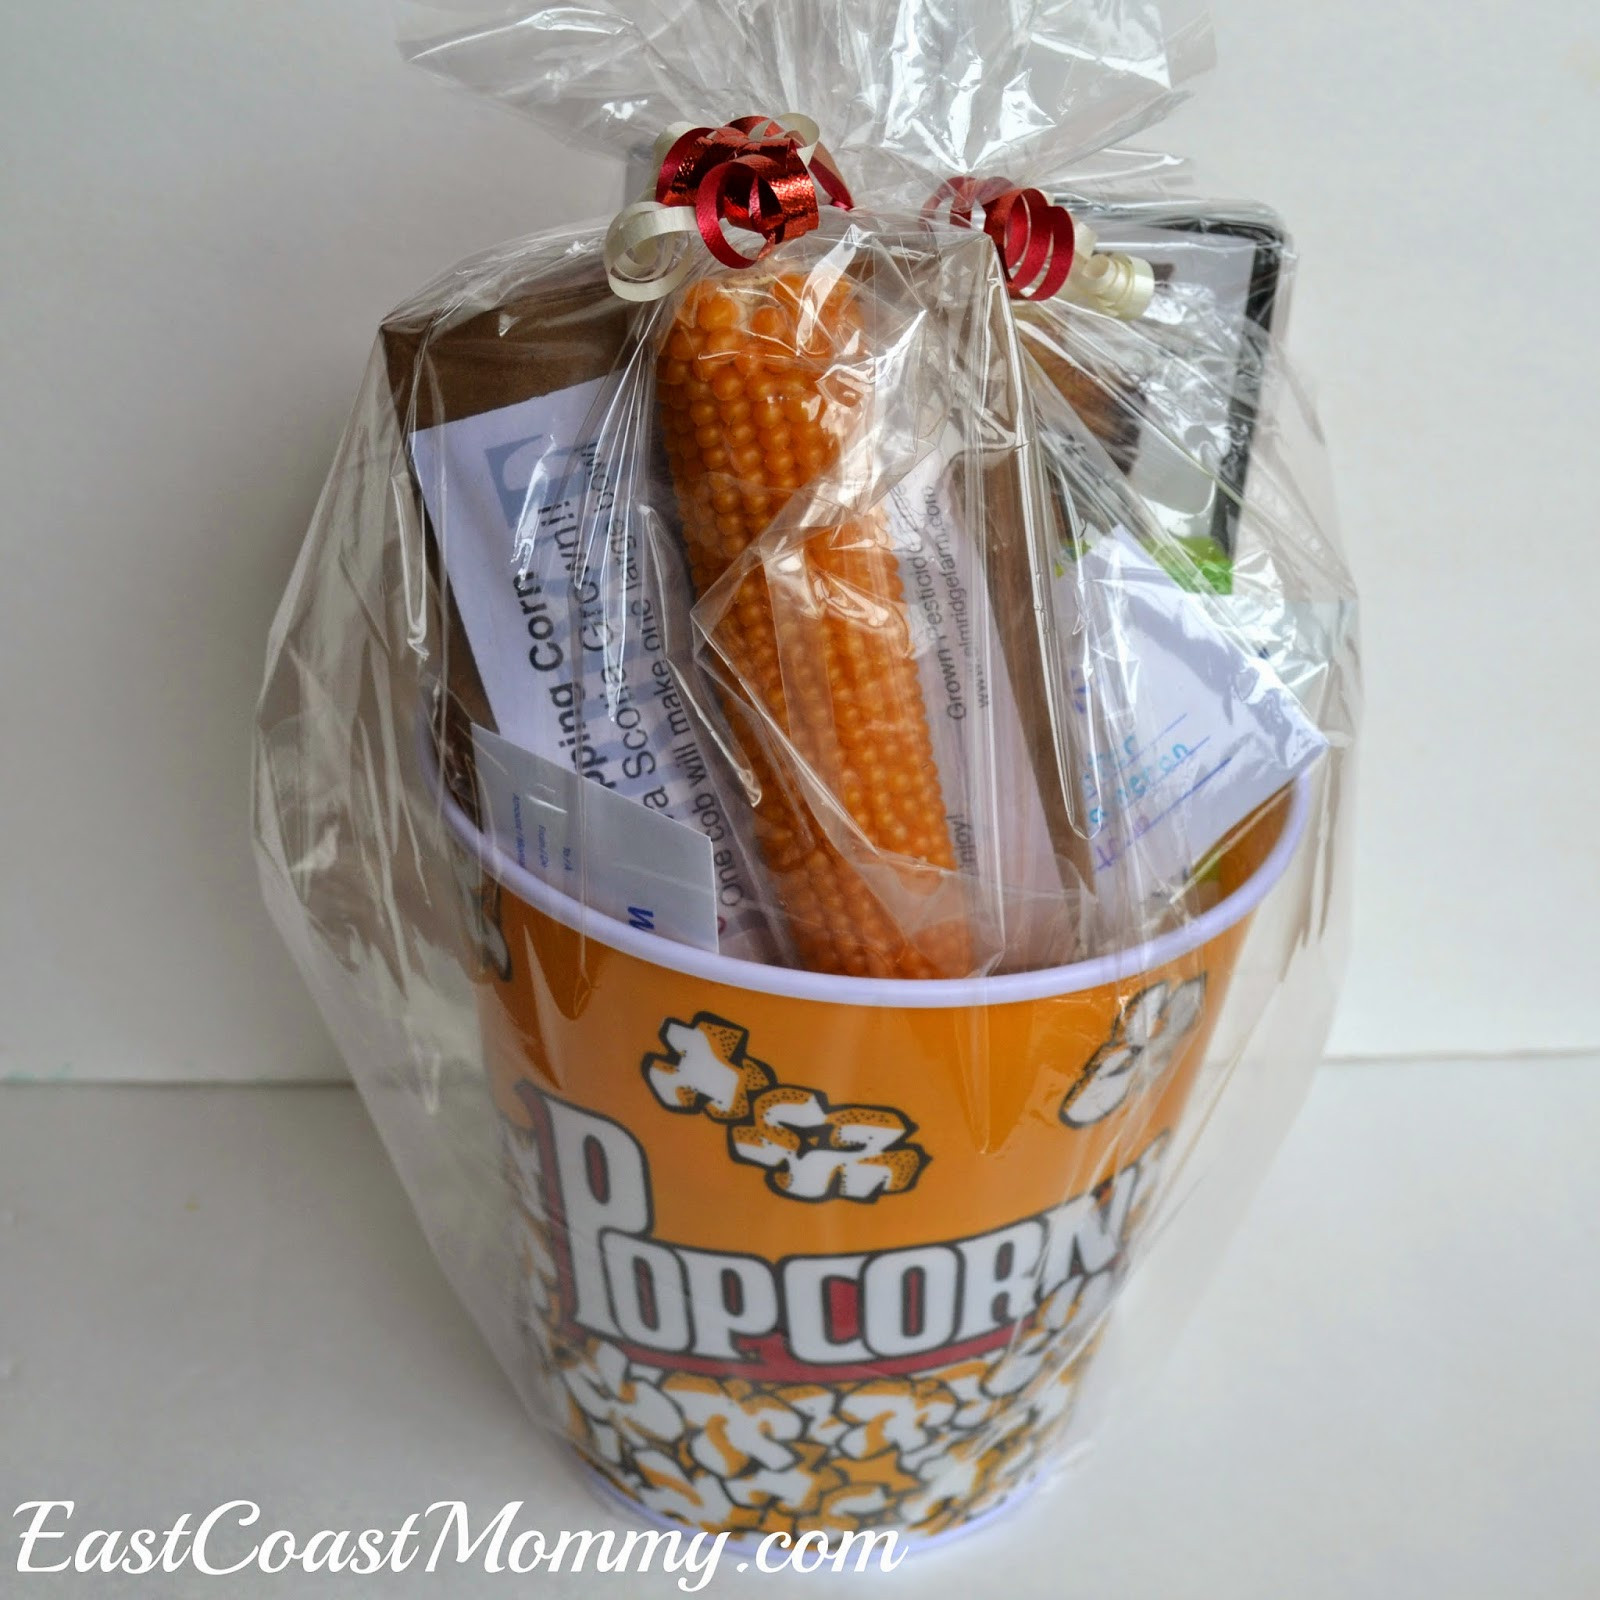 Best ideas about Basket Gift Ideas . Save or Pin East Coast Mommy 5 DIY Gift Basket Ideas for kids Now.